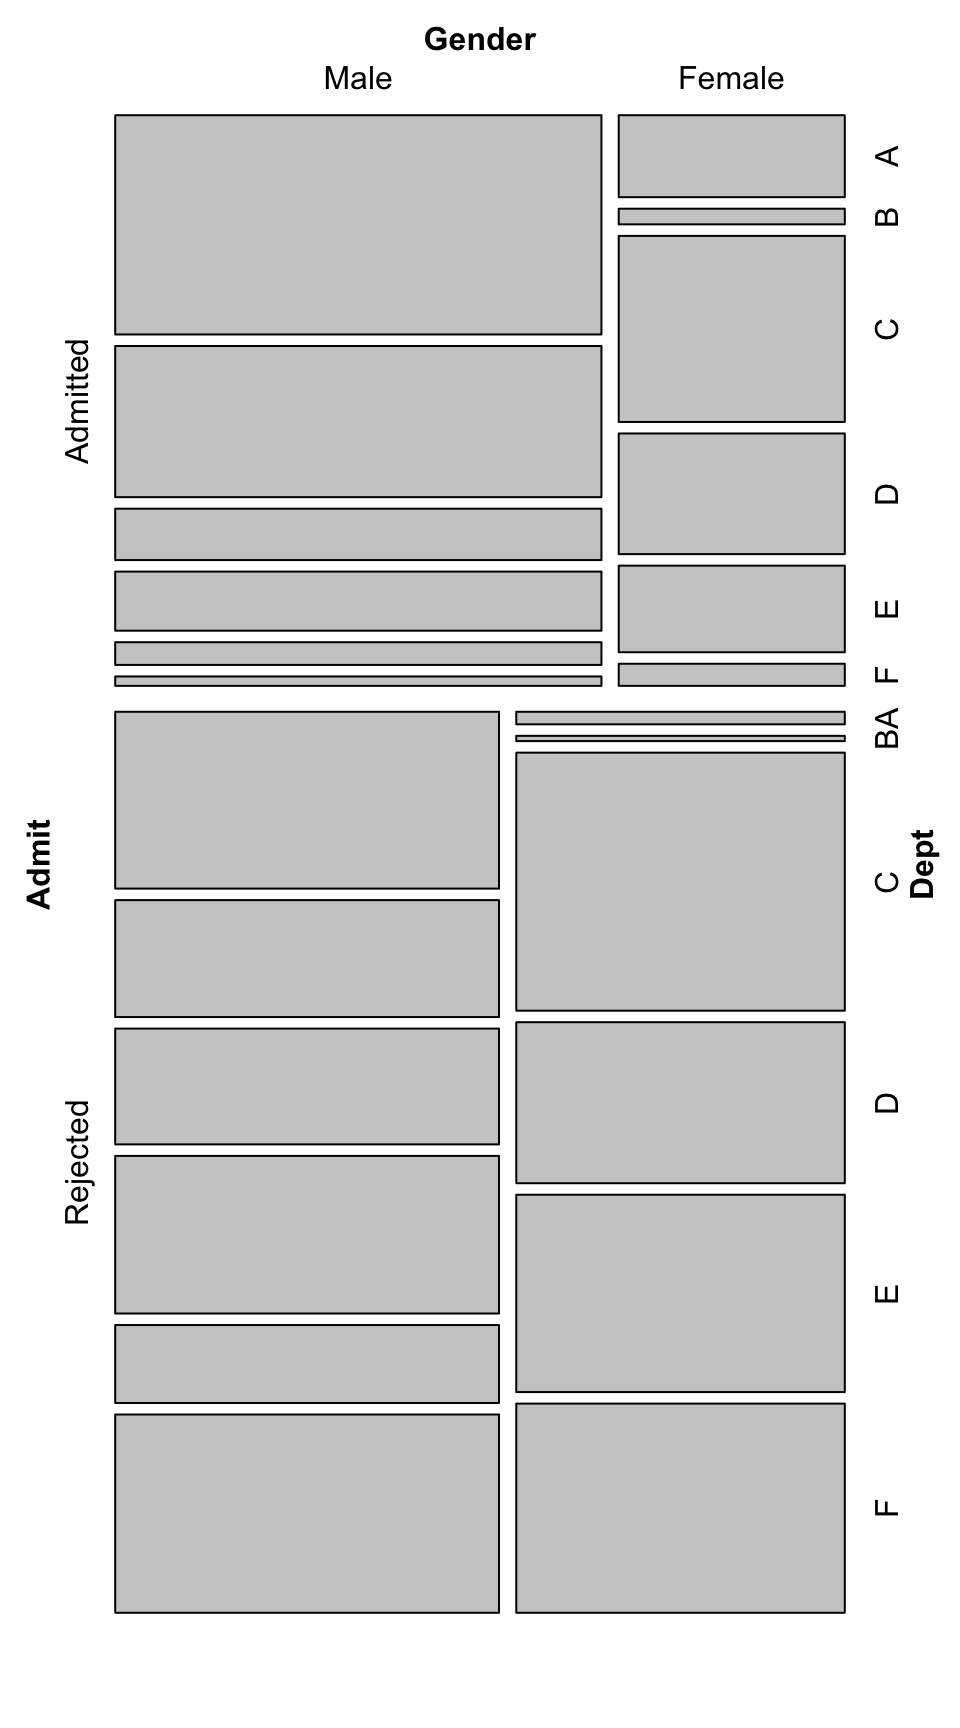 Mosaic plot of UC-Berkeley admissions data-the area of each rectangle is proportional to the number of cases in that cell